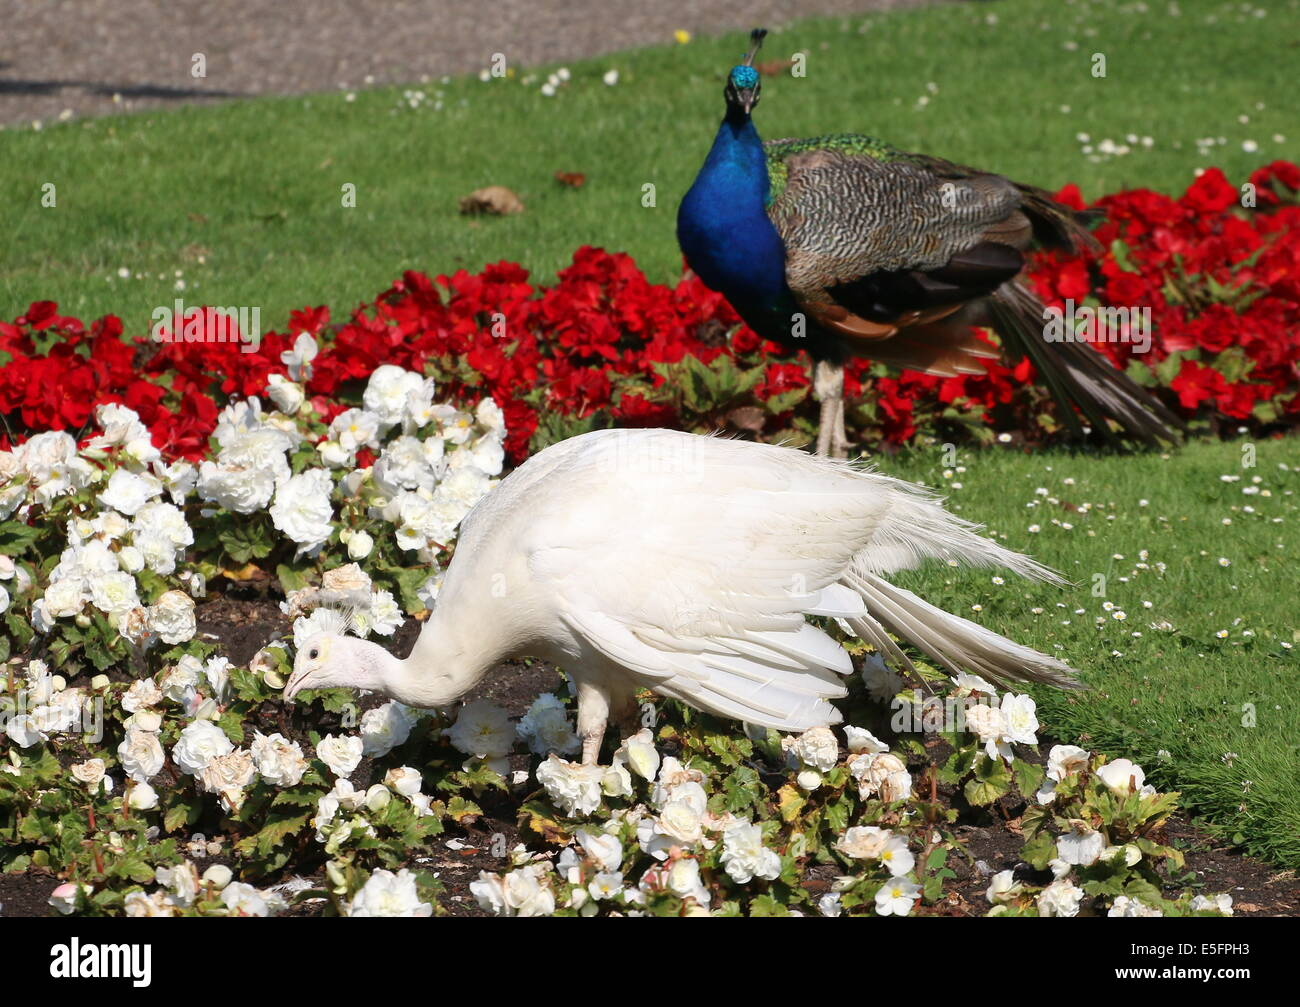 Leucistic or all white variety of the  Blue Peacock  (Pavo cristatus) foraging in a flower bed, normal blue male - Stock Image